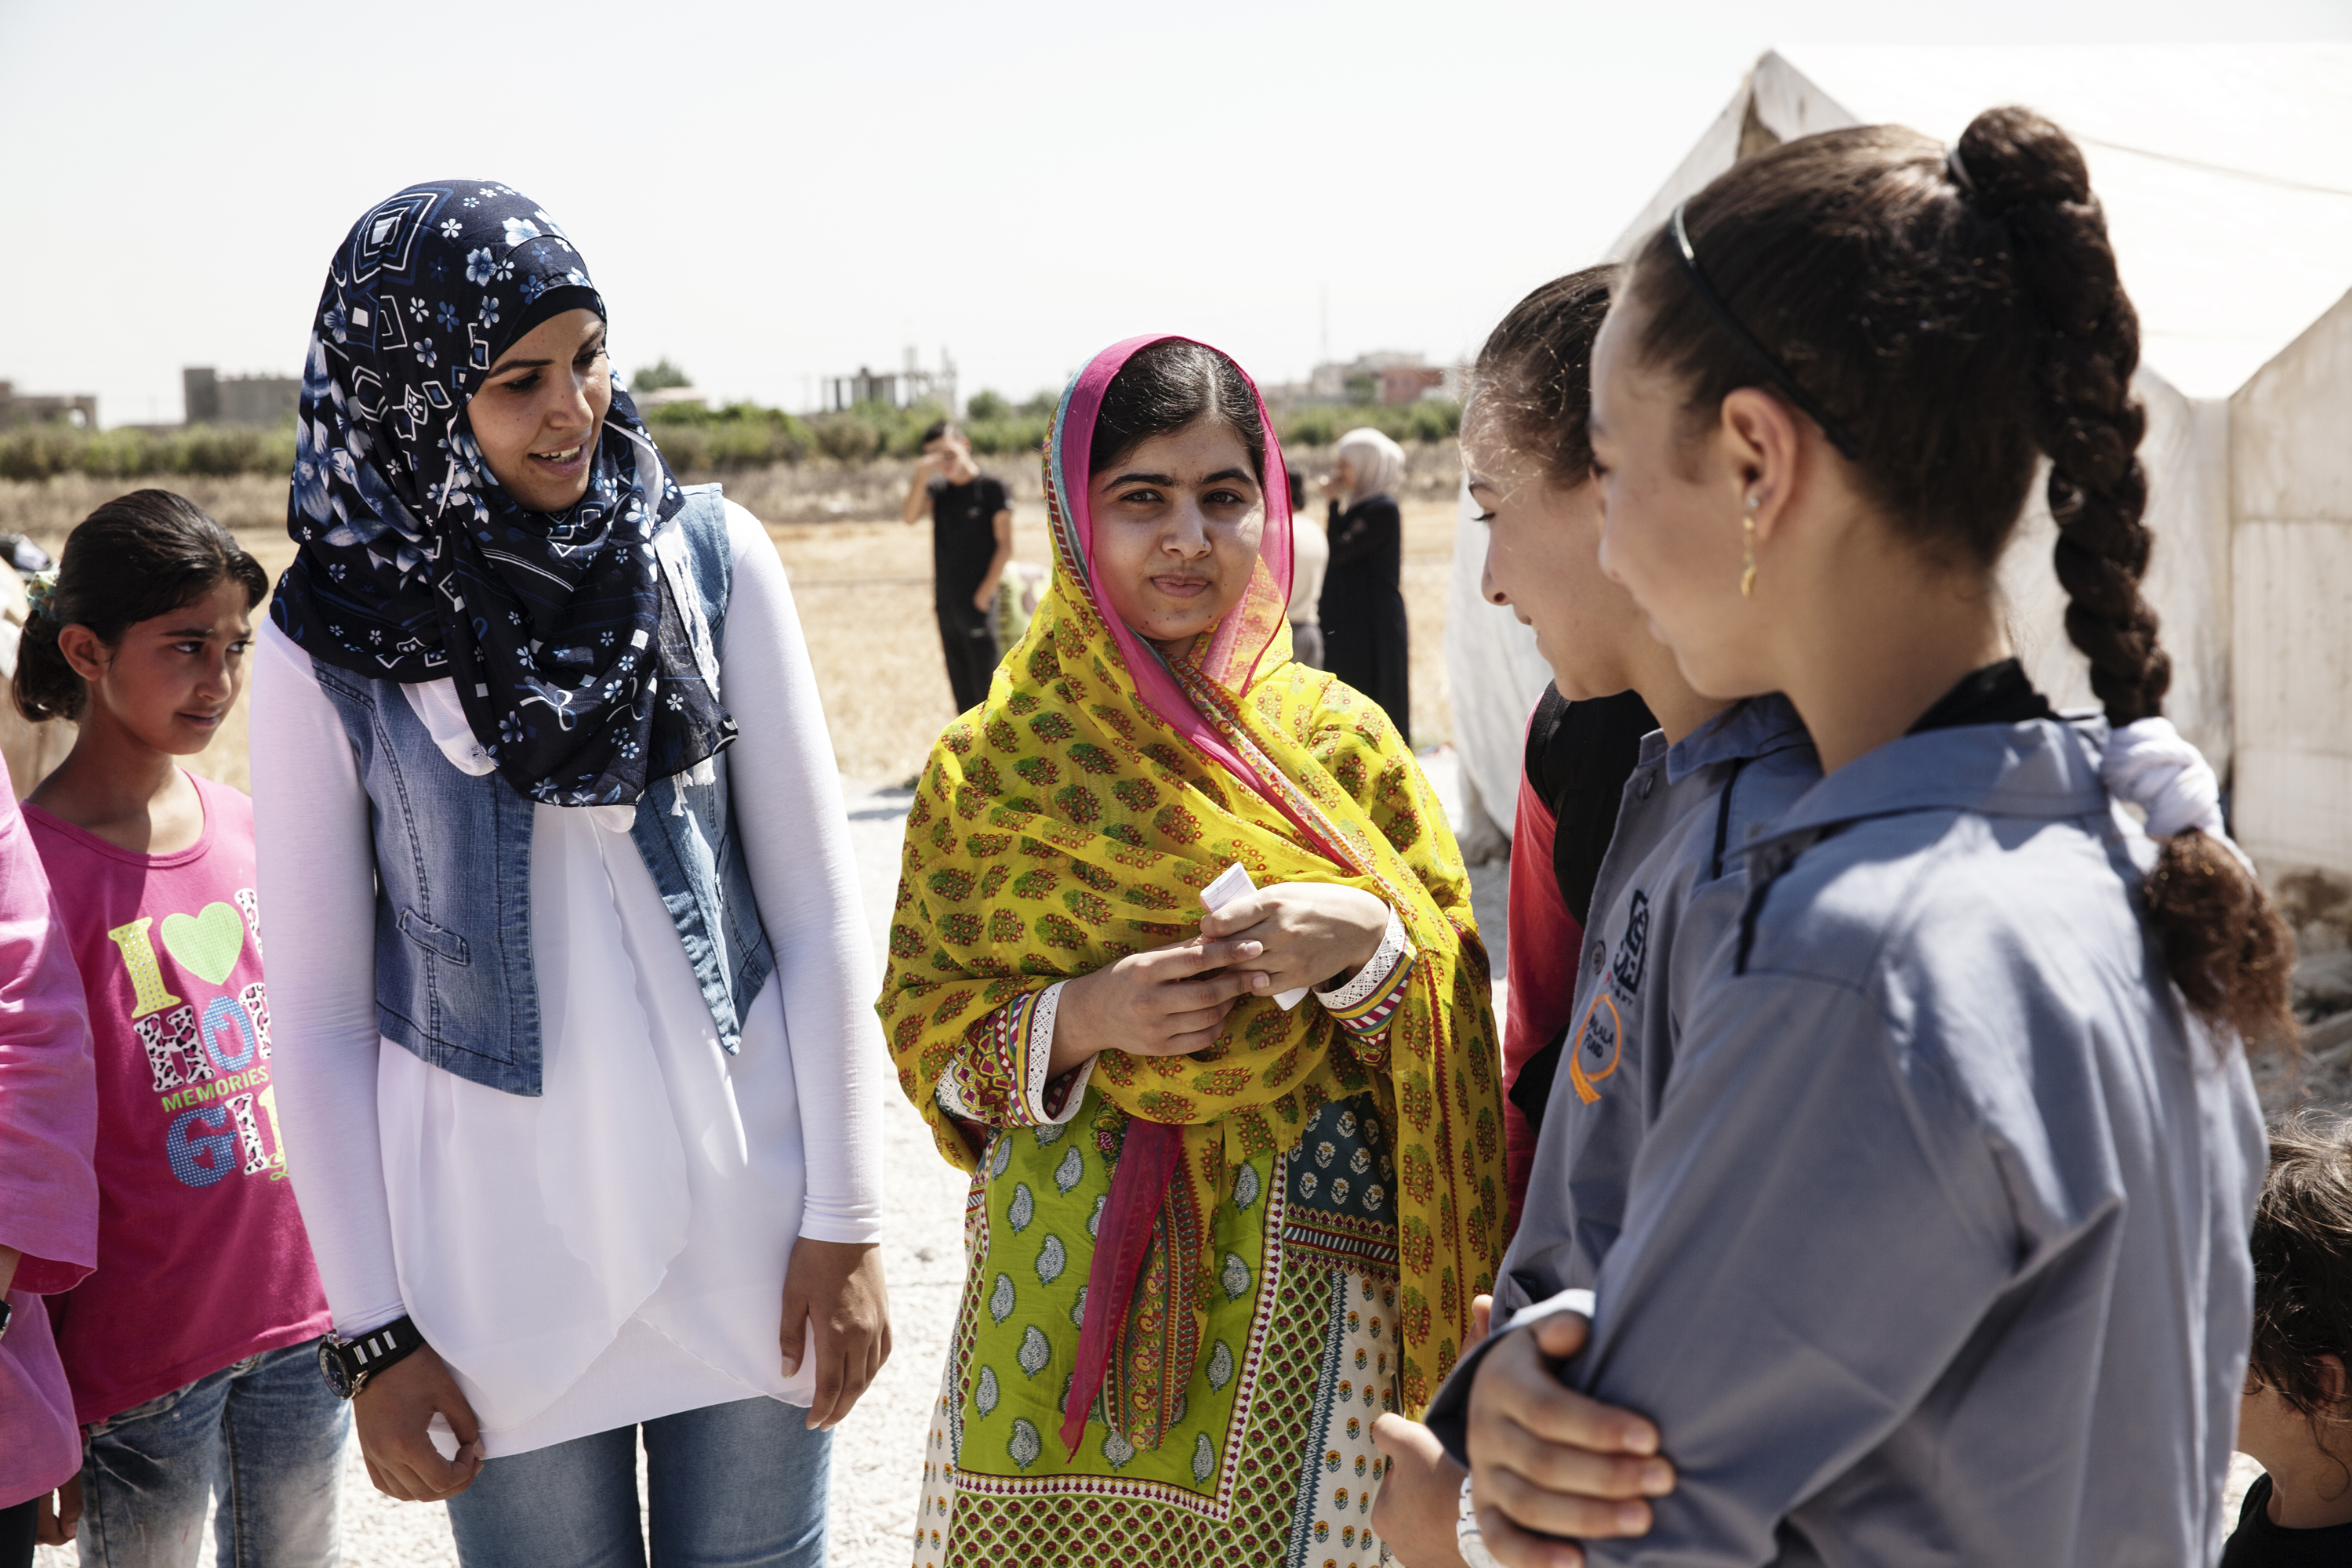 Malala Yousafzai with Syrian refugee girls in Lebanon.